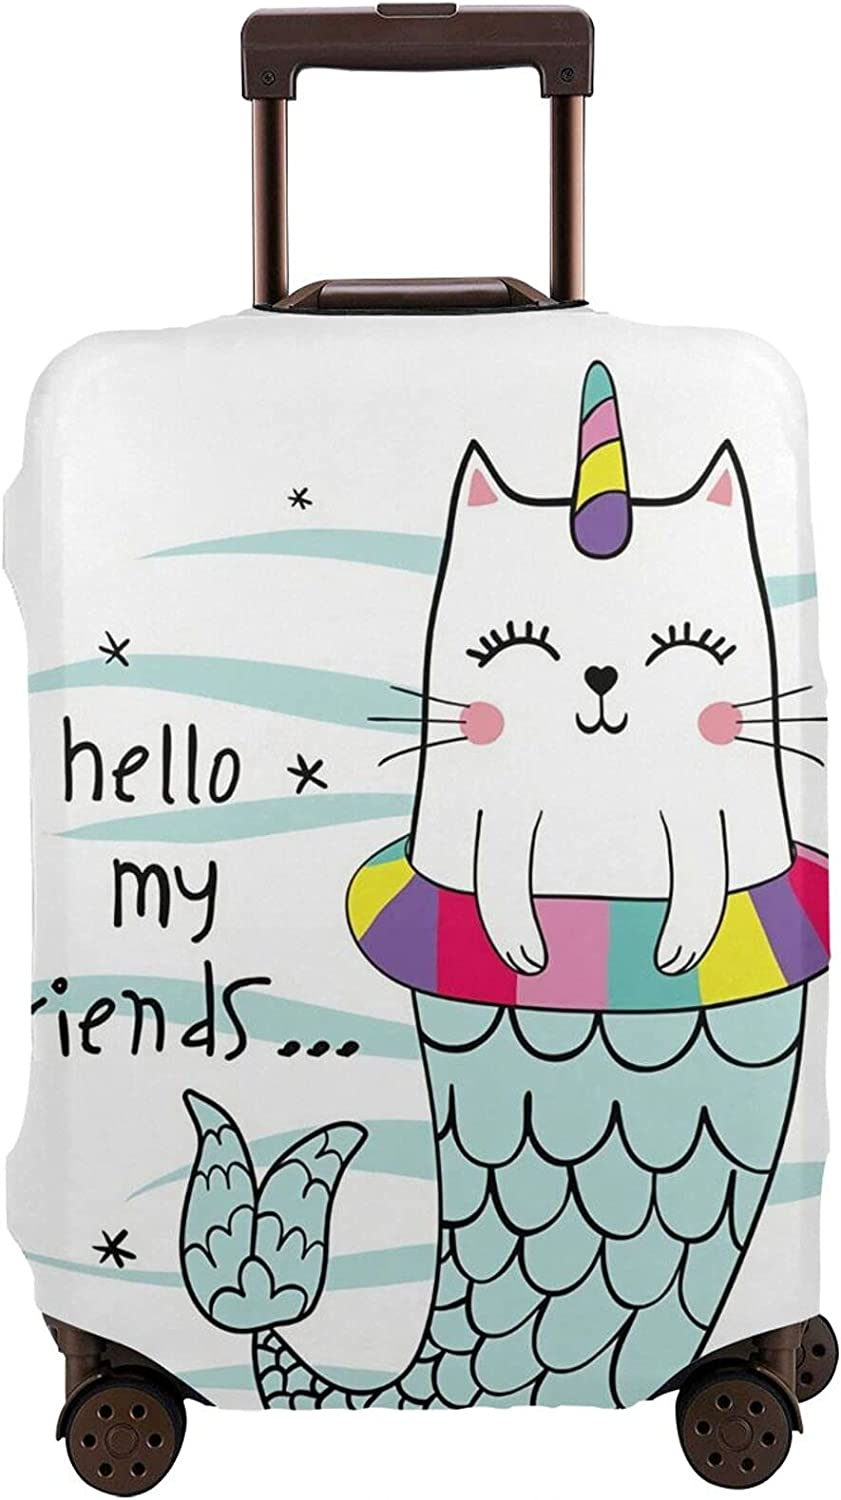 Bargain Mermaid Cat Travel Lowest price challenge Luggage Suitcase Protector Cover Personalized